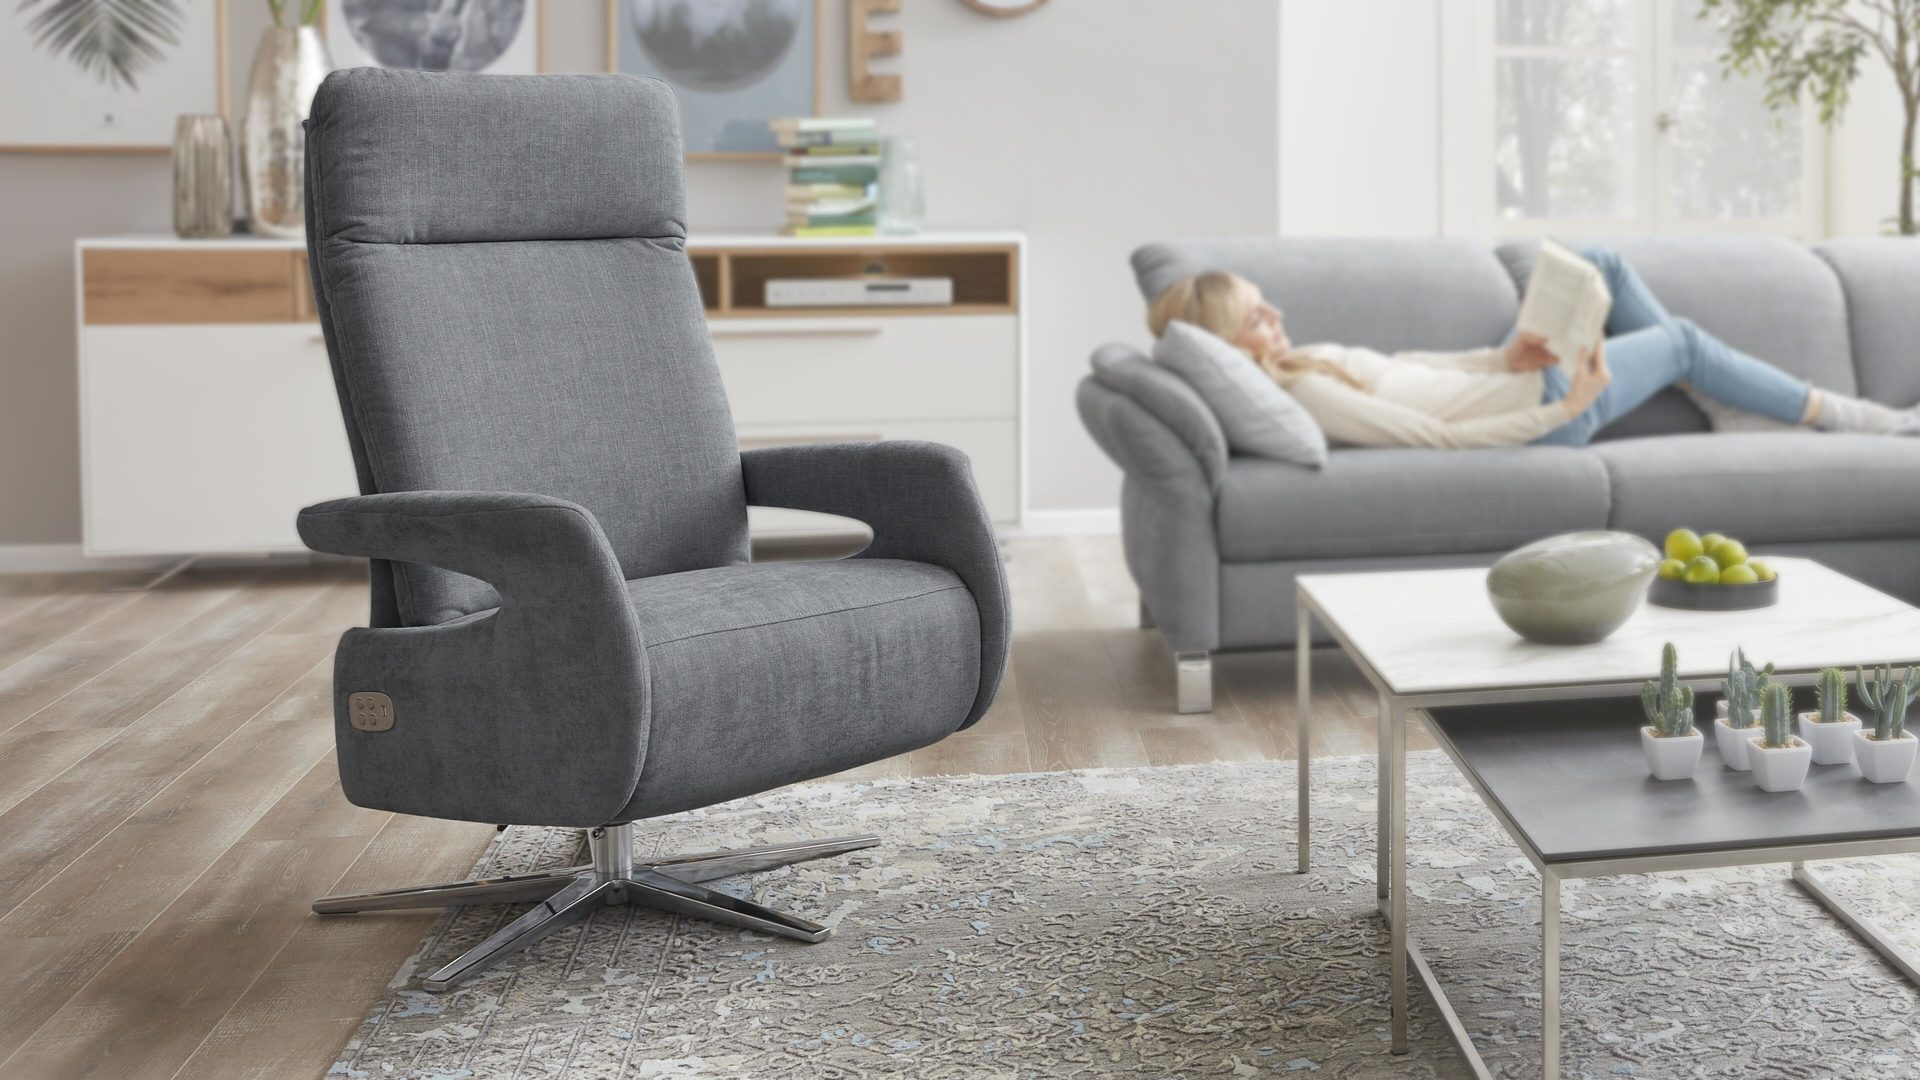 Relaxsessel Blau Interliving Sessel Serie 4510 Relaxsessel Jeansblauer Bezug